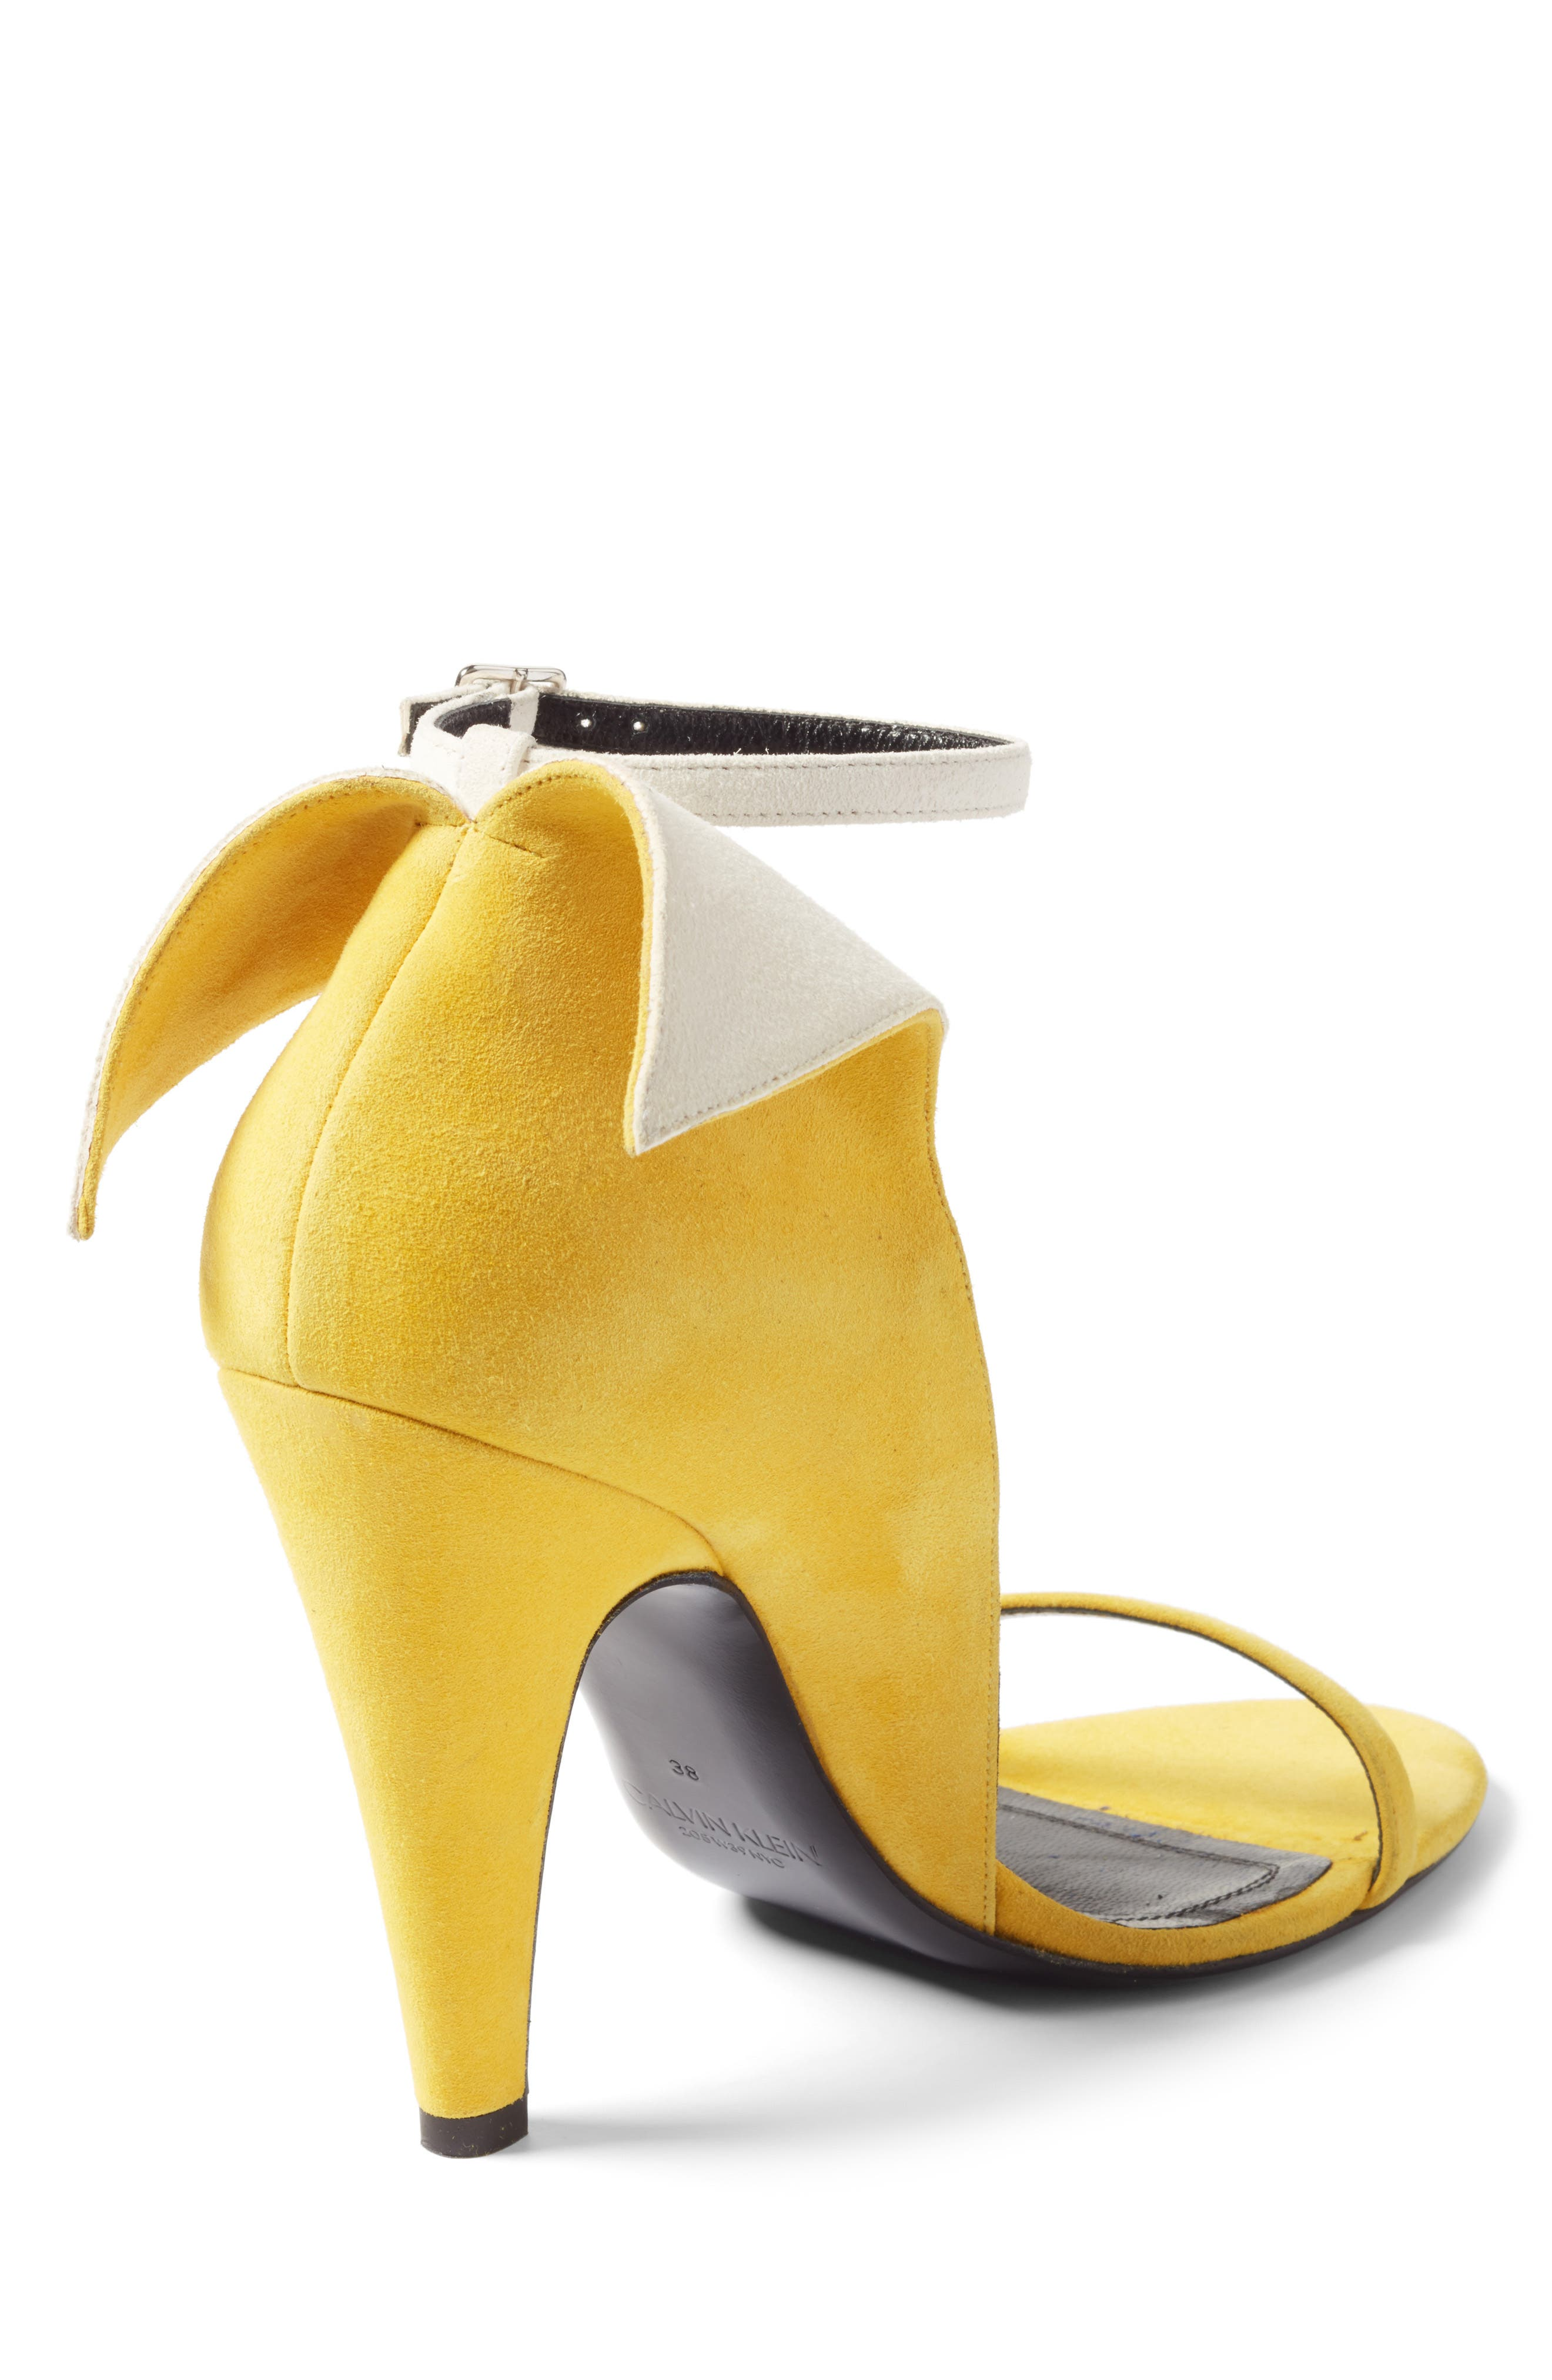 Alternate Image 2  - CALVIN KLEIN 205W39NYC Cammy Sandal (Women)